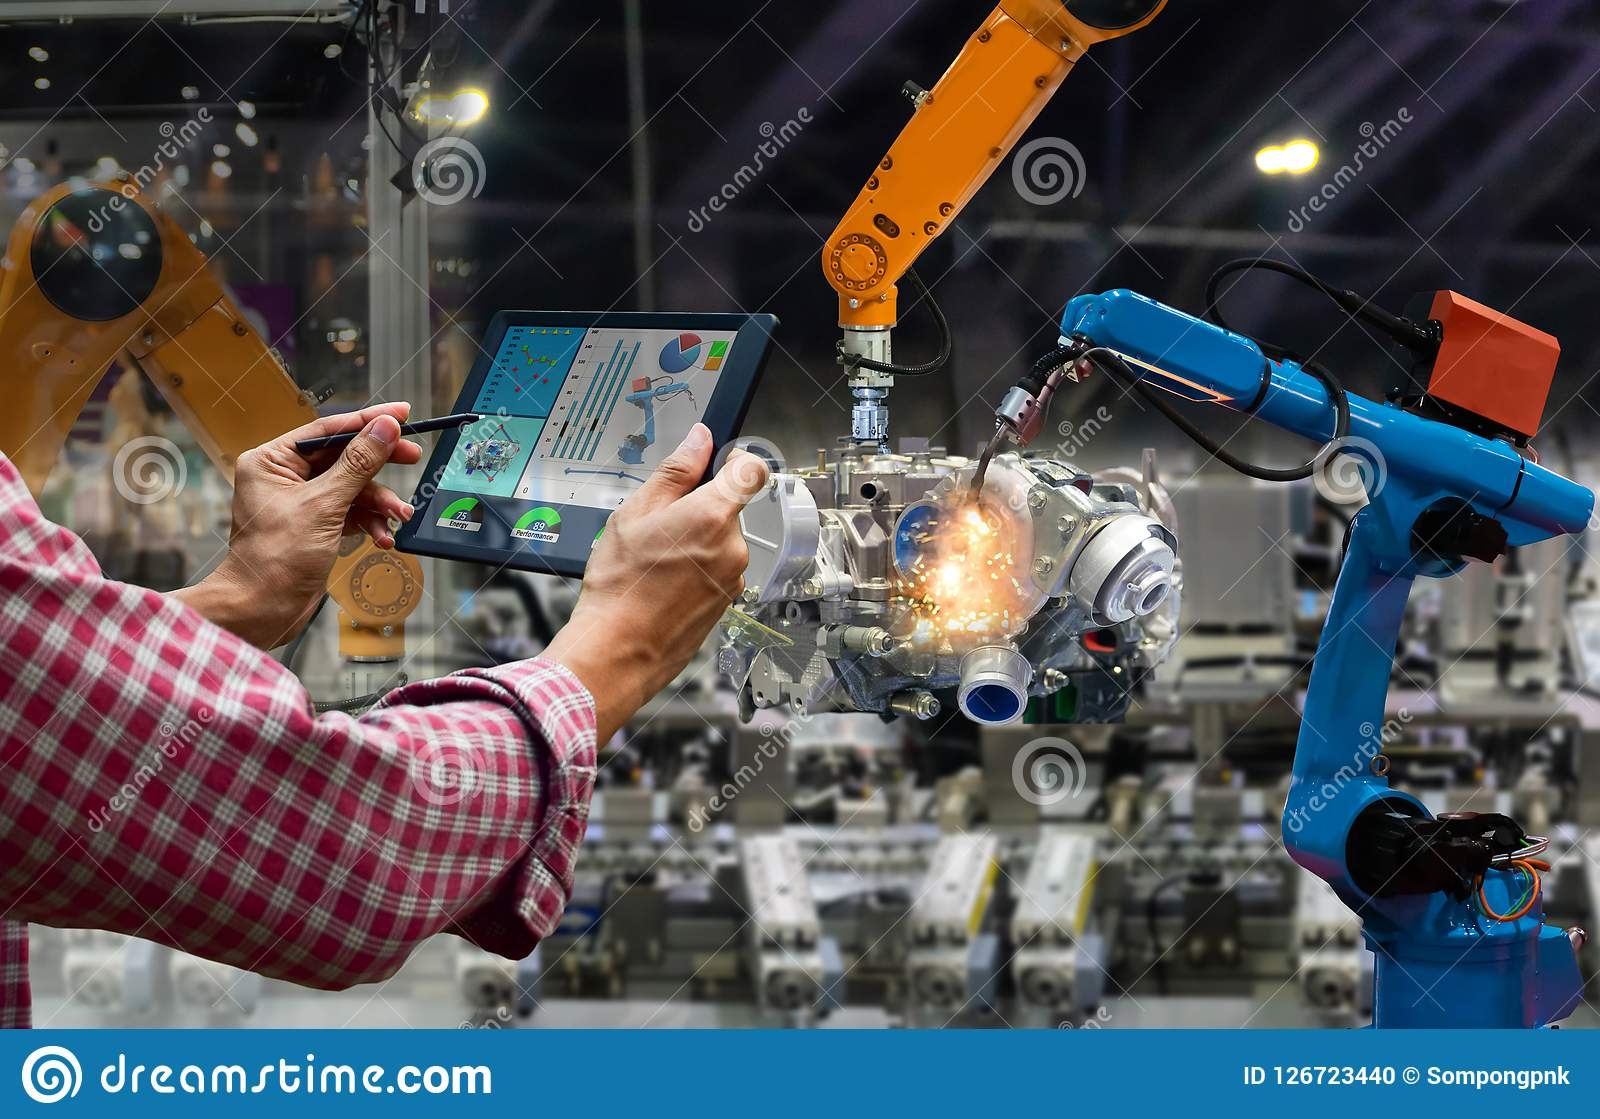 Engineer touch screen control robot the production of factory parts engine manufacturing industry